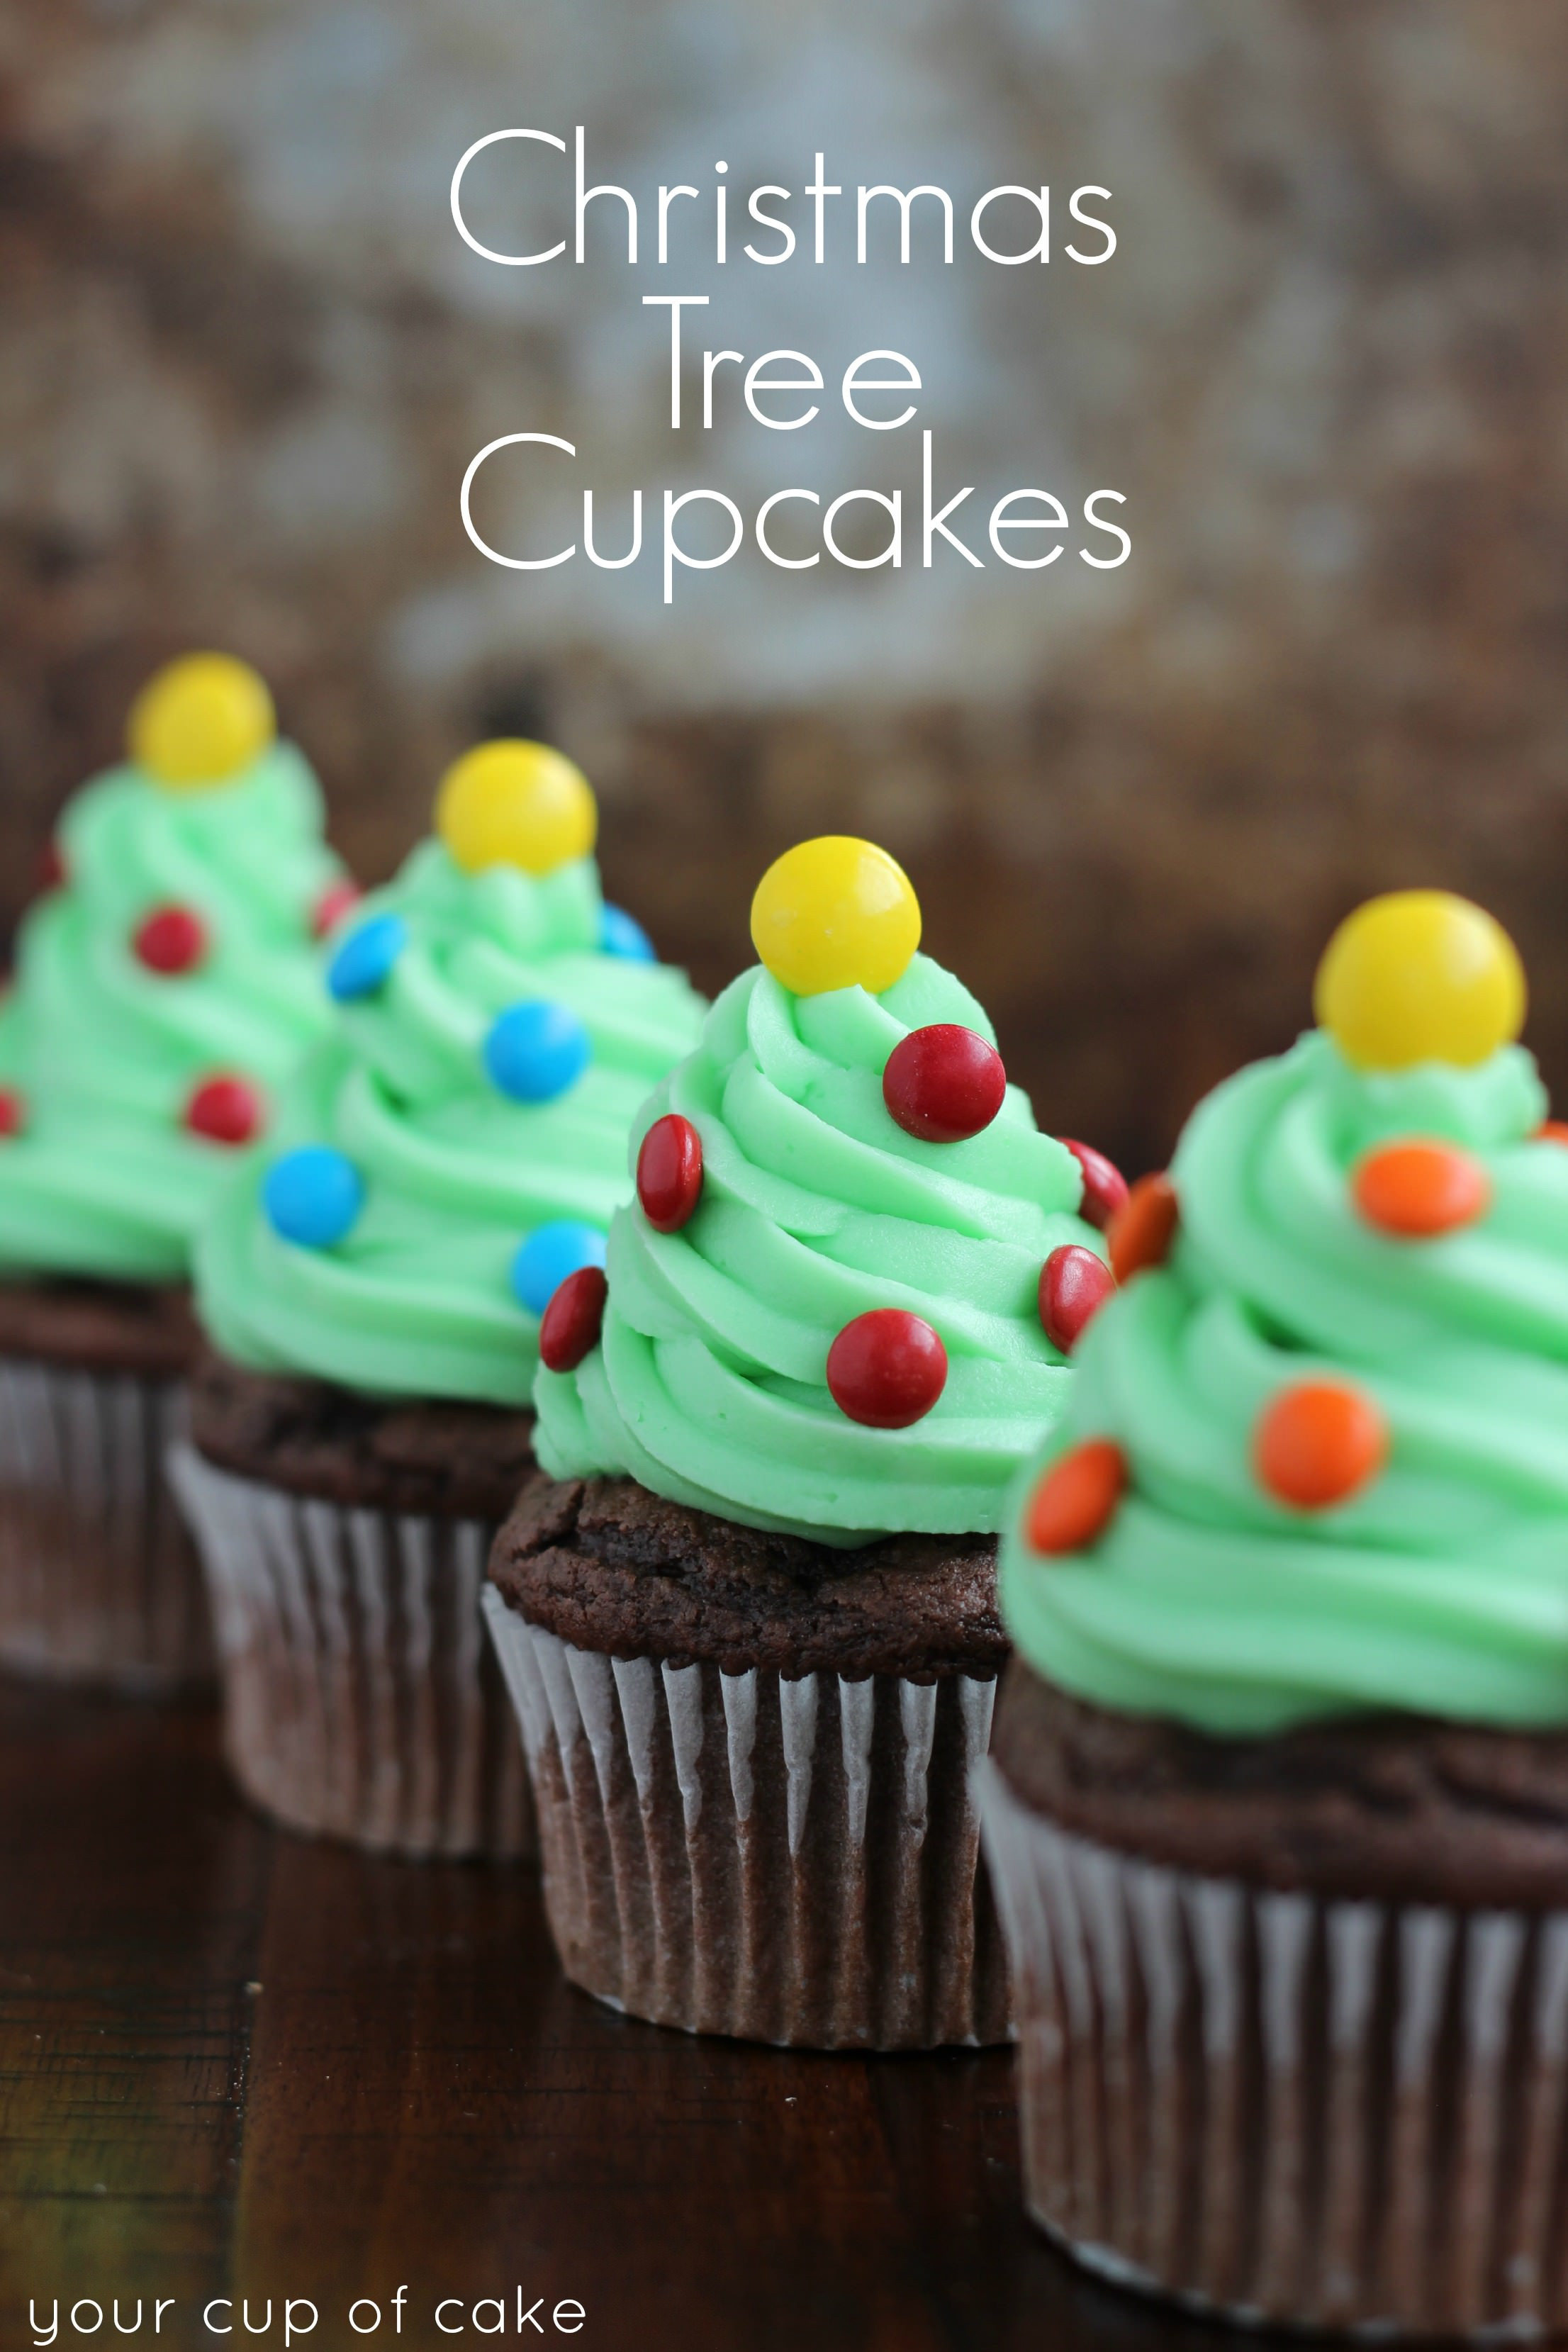 Easy Christmas Cupcakes  Easy Cupcake Decorating for Christmas Your Cup of Cake